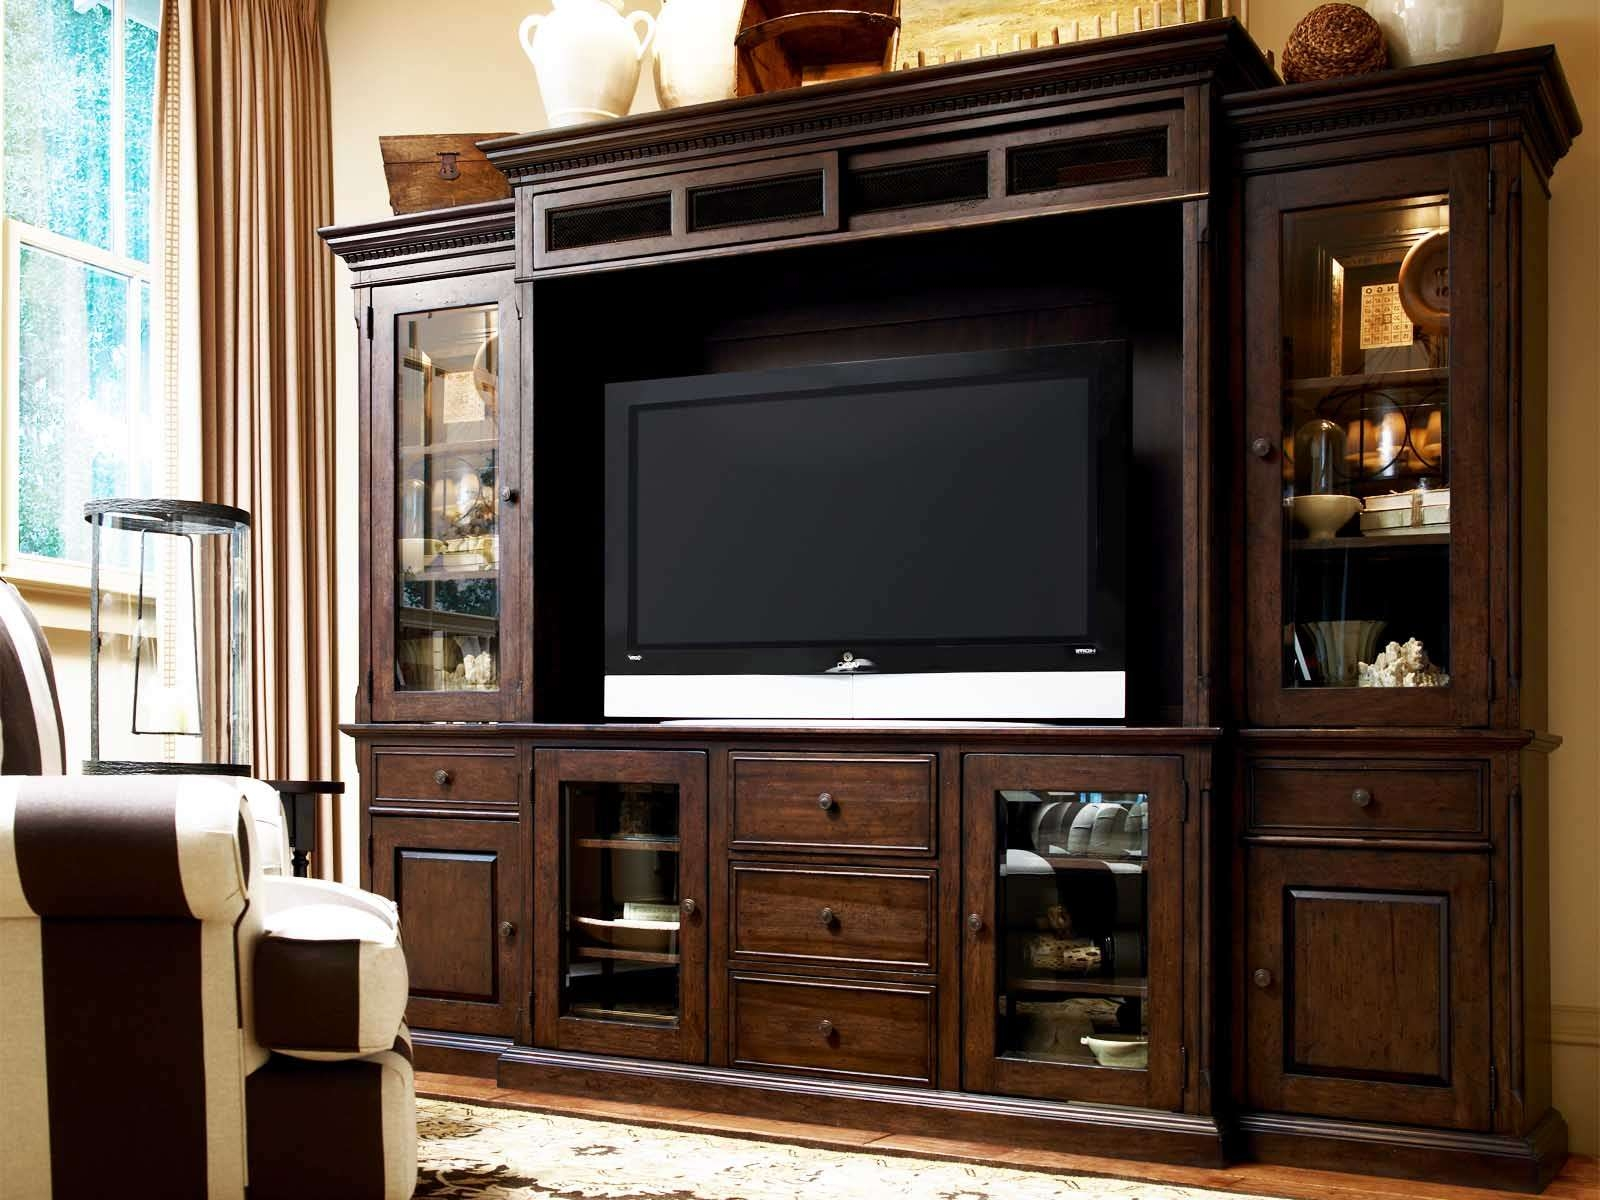 Large Brown Lacquered Mahogany Wood Media Cabinet With Lighted Throughout Wooden Tv Cabinets With Glass Doors (View 4 of 20)